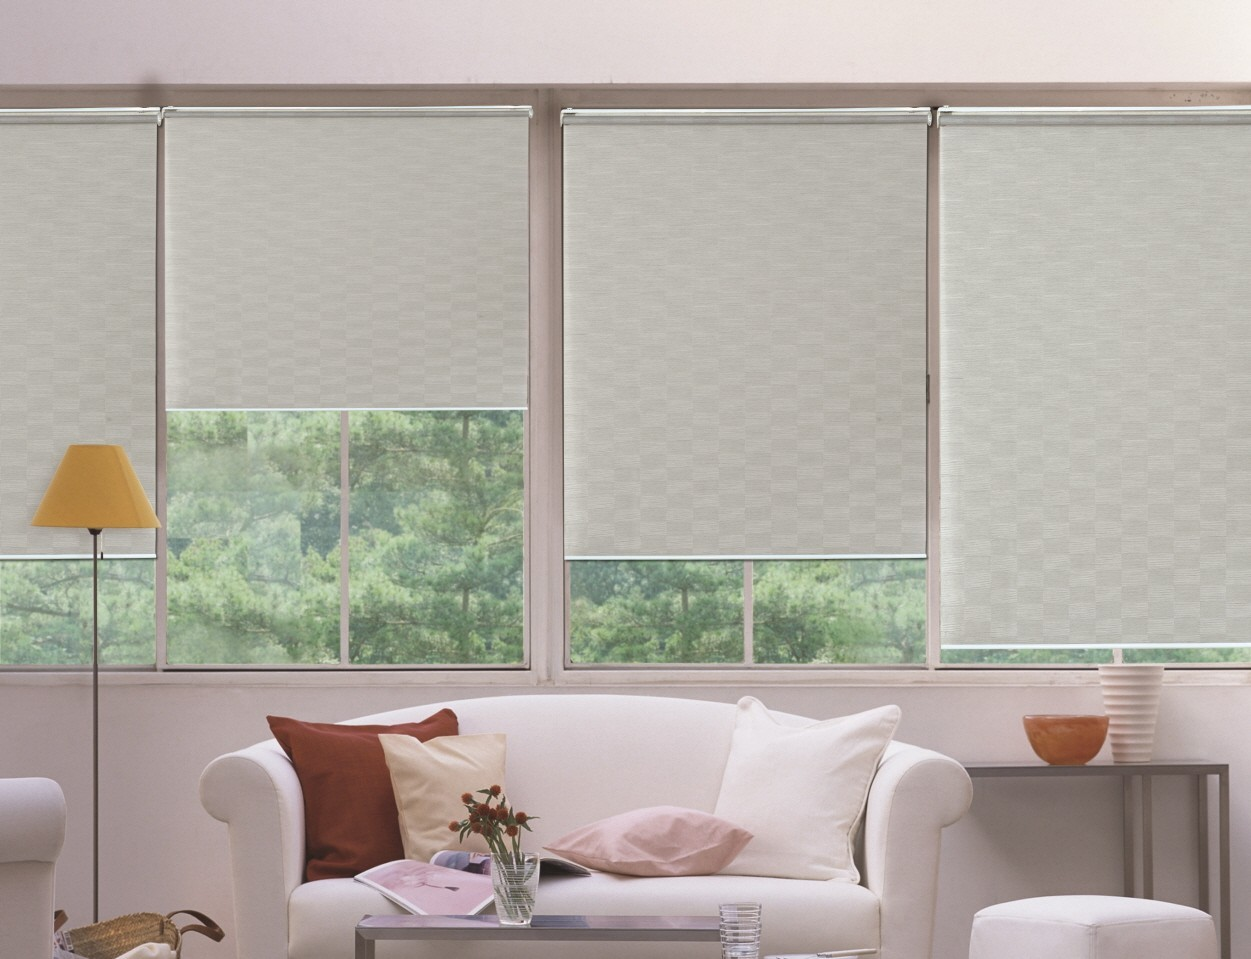 Image gallery window shades Curtains venetian blinds